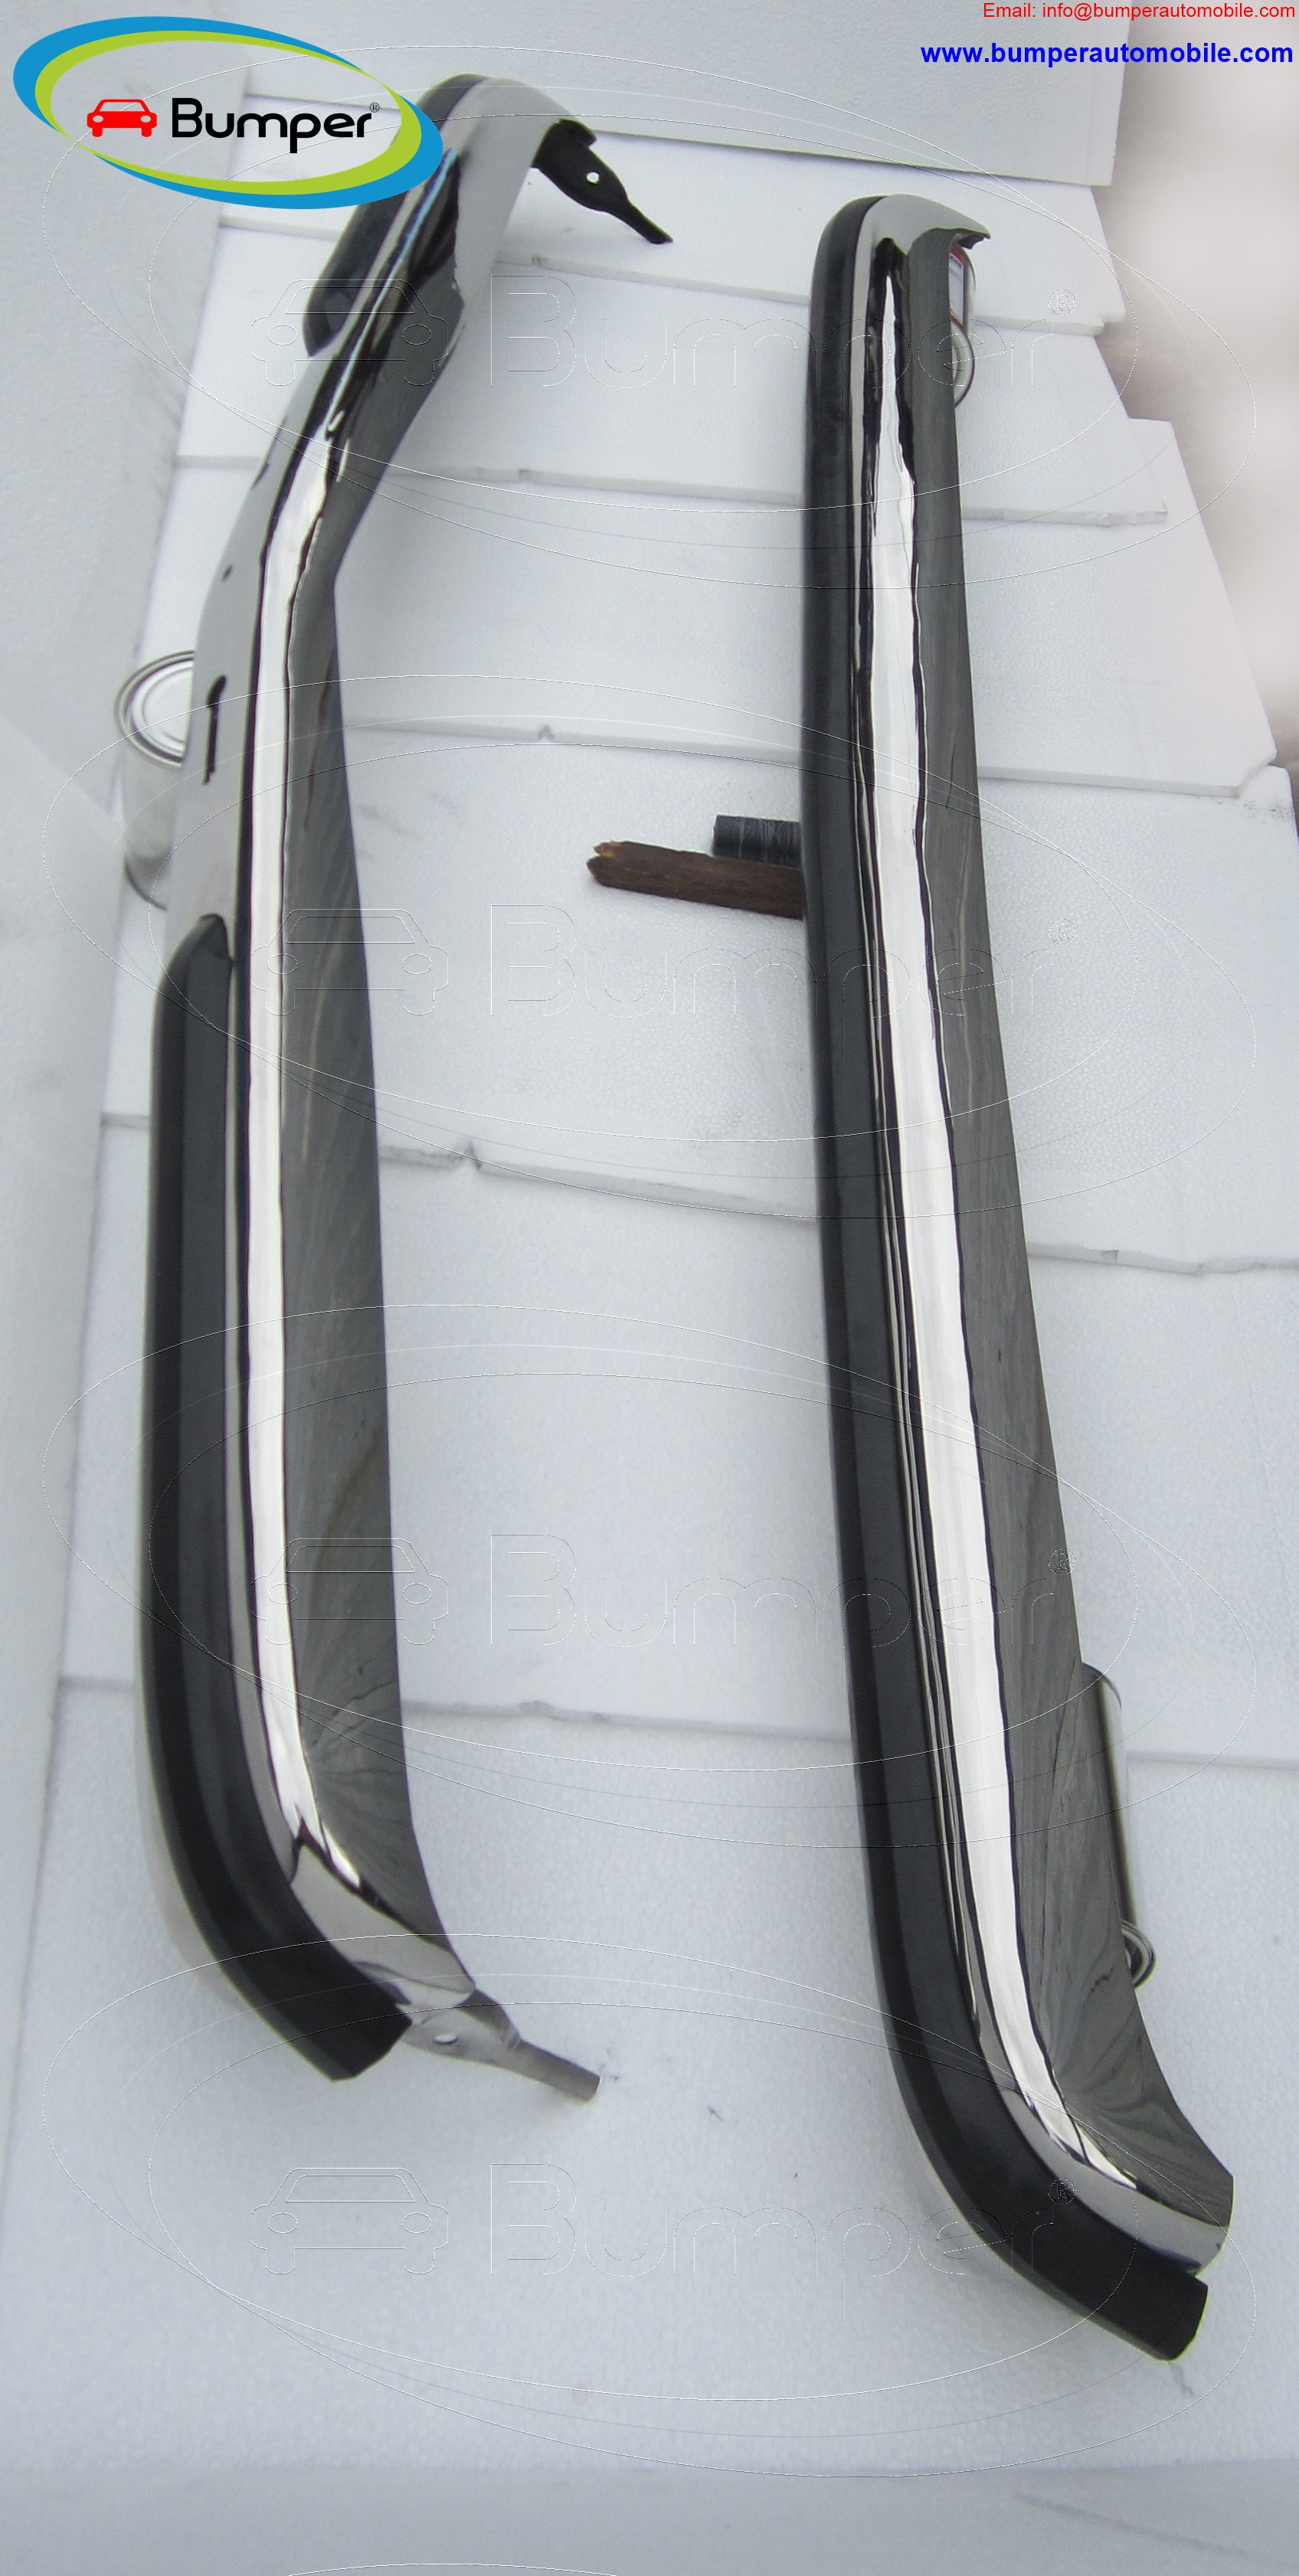 Stainless steel Mercedes W123 Sedan bumper ( 1976 - 1985 )